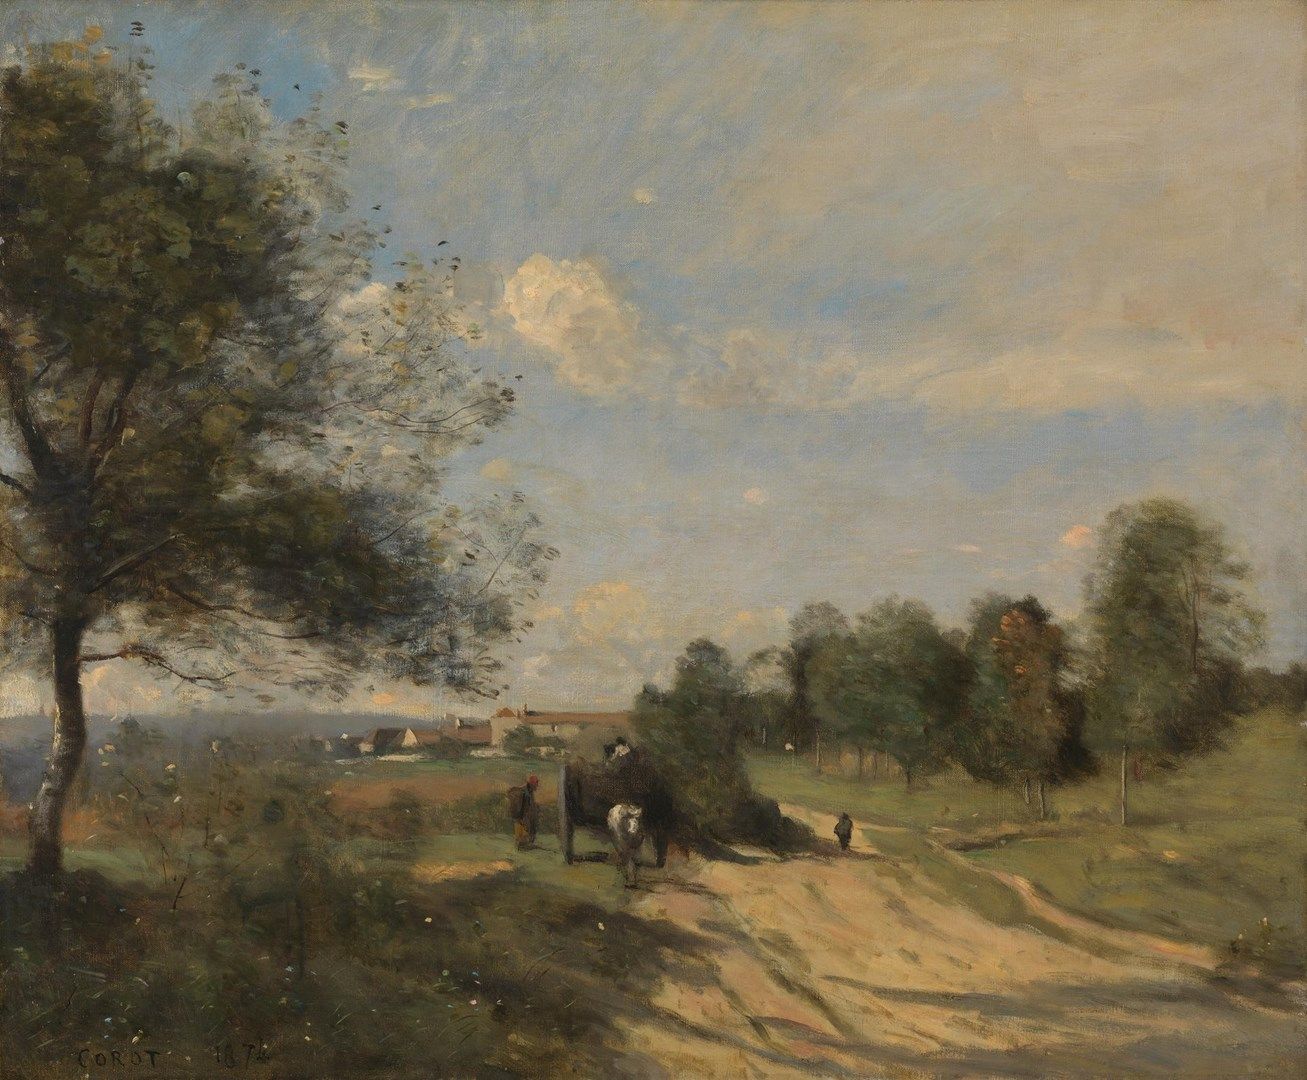 The Wagon ('Souvenir of Saintry') by Jean-Baptiste-Camille Corot